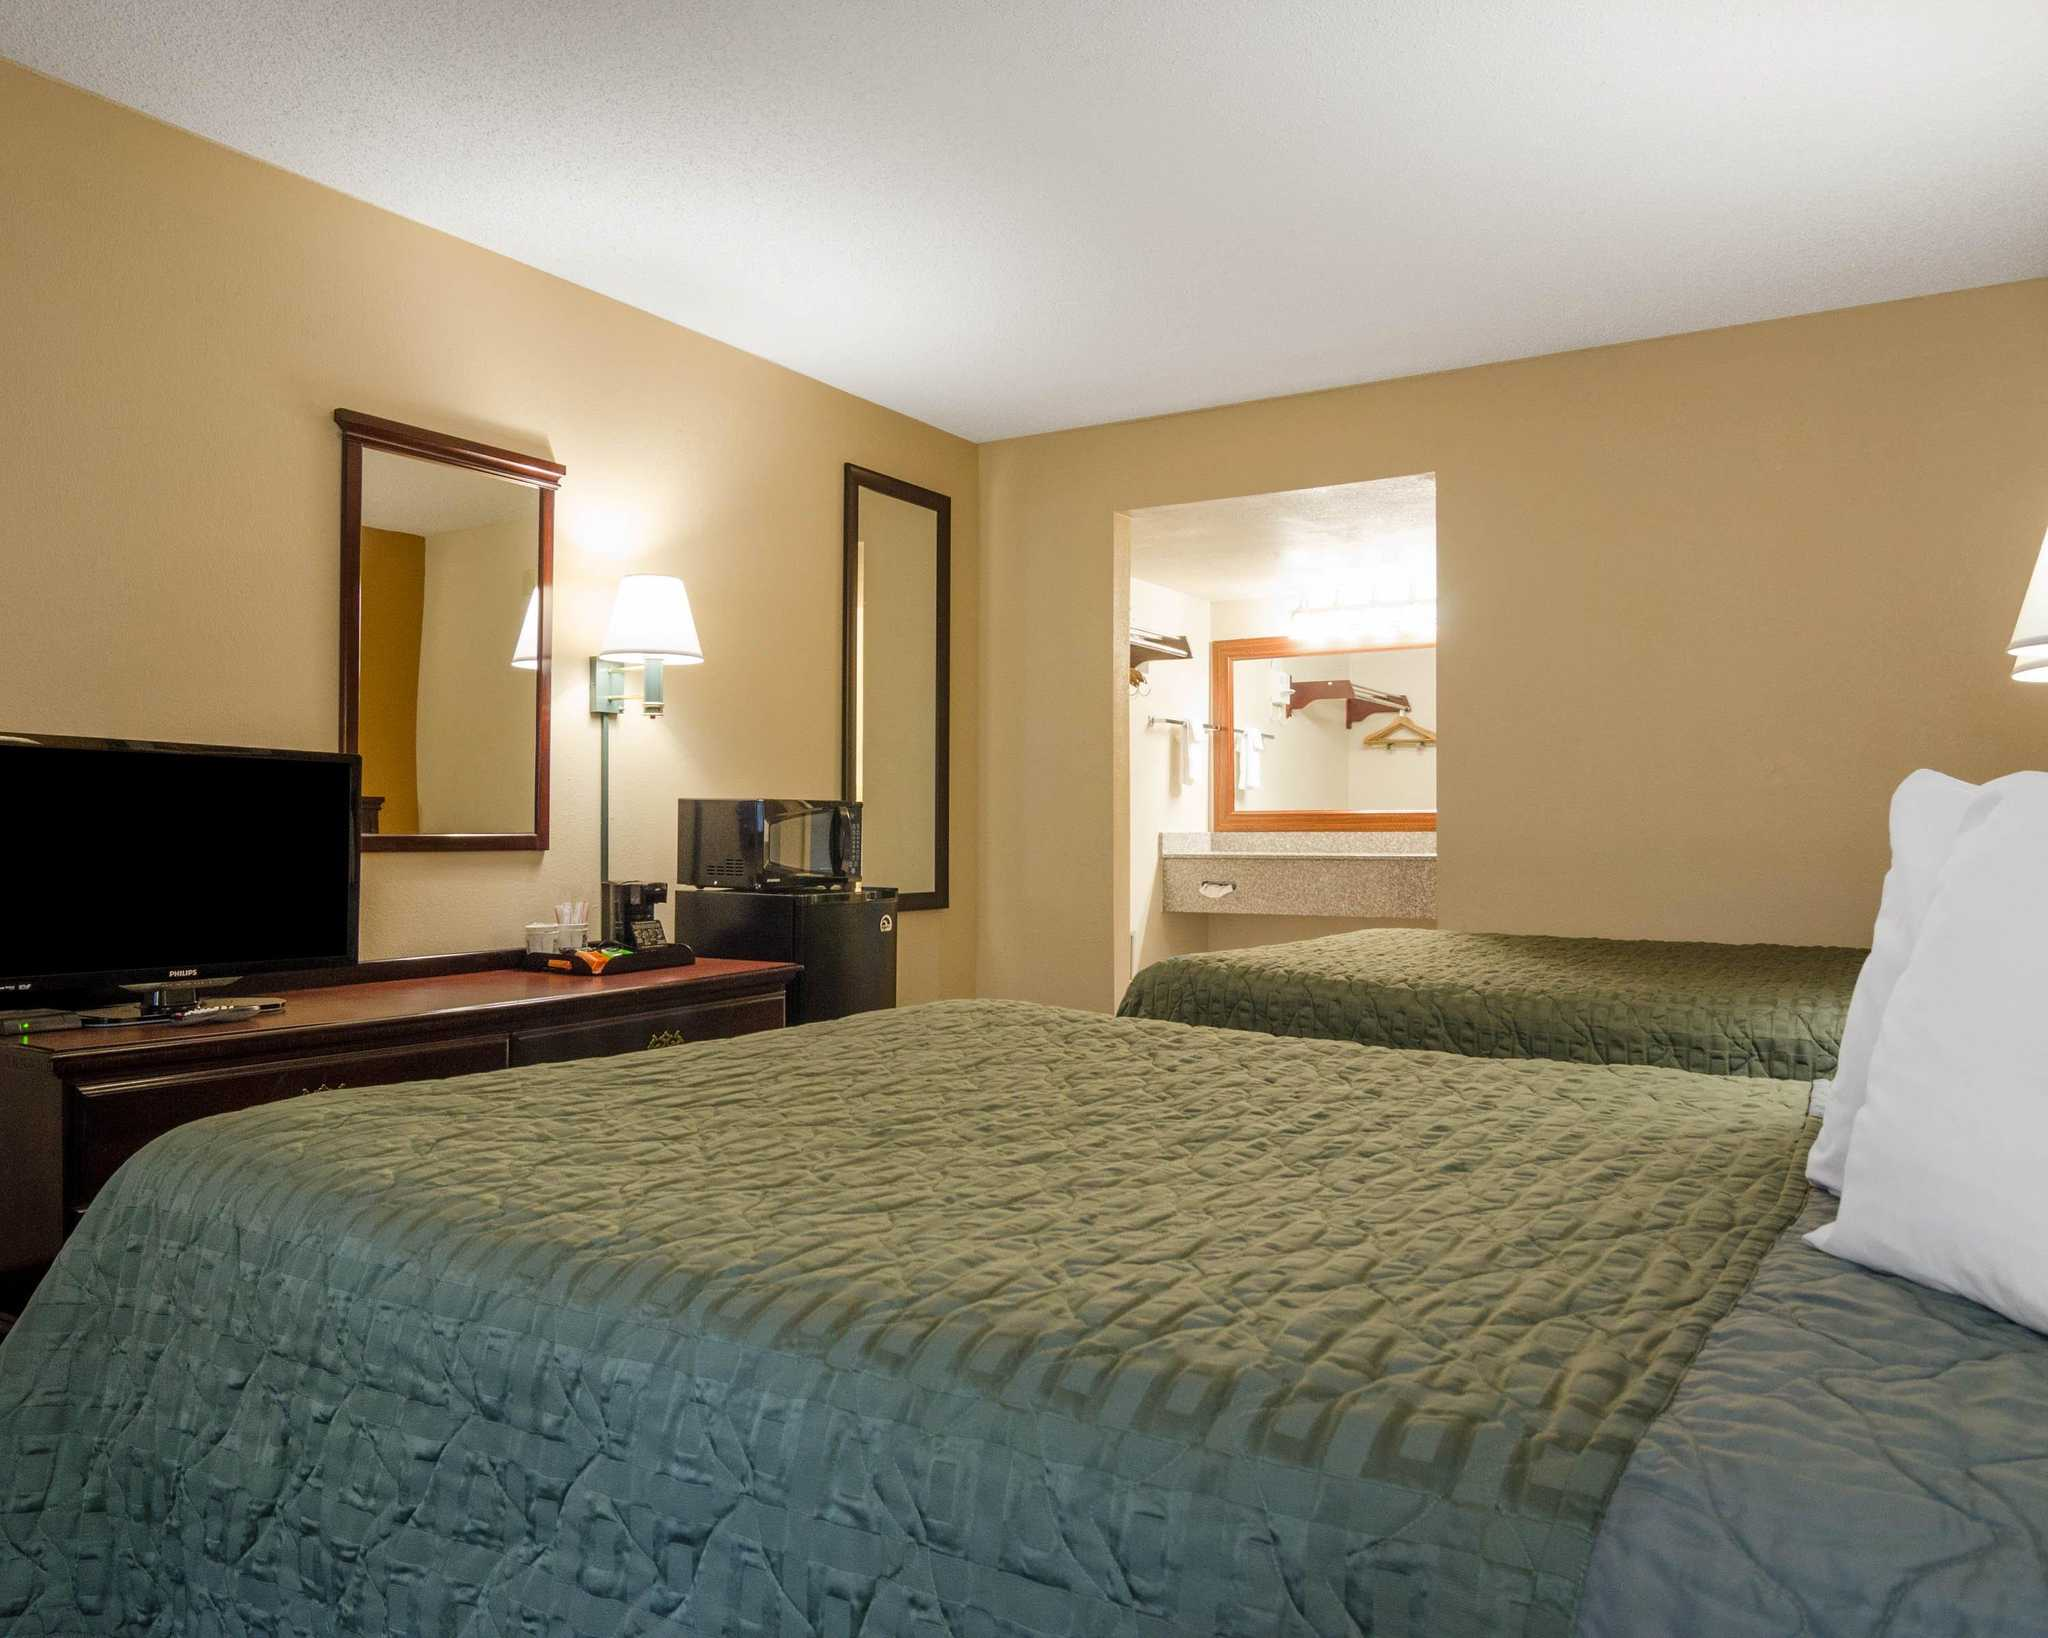 Quality Inn image 15